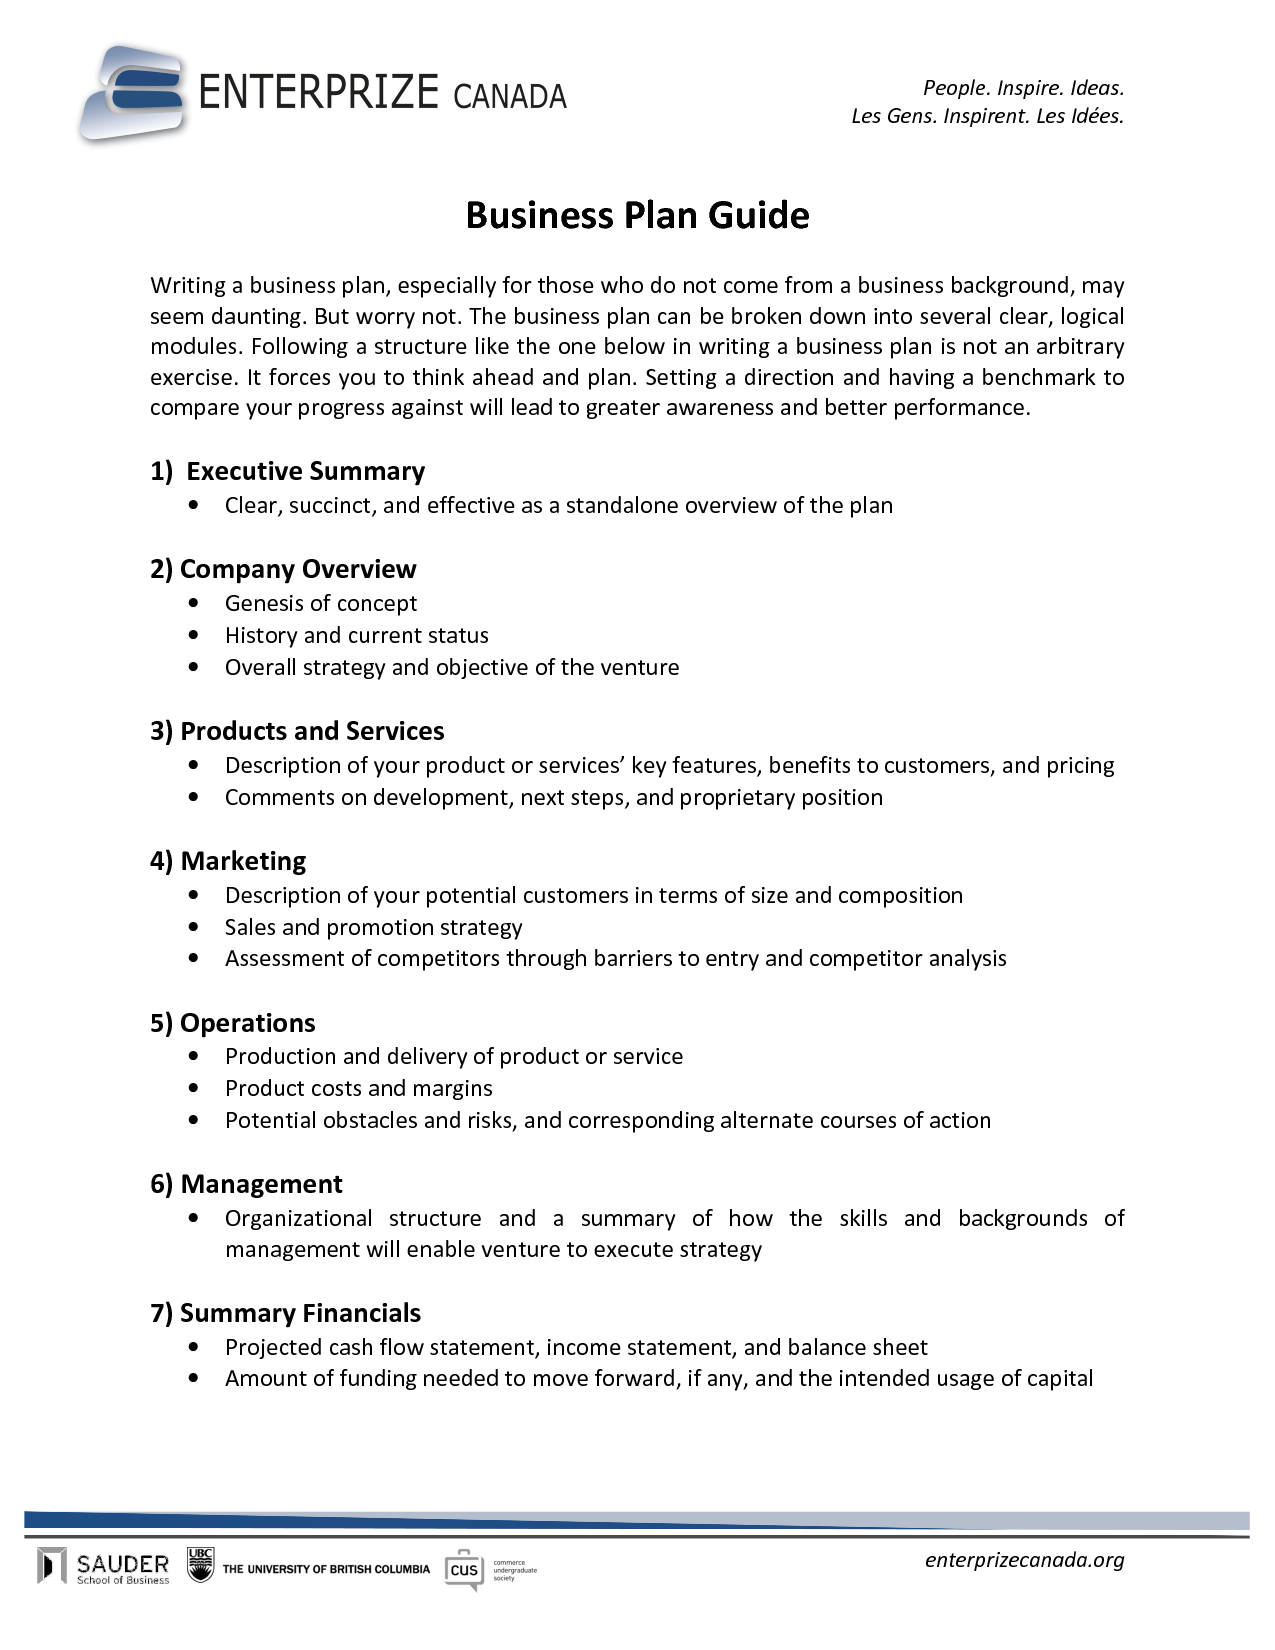 Sample business plan format idealstalist sample business plan format accmission